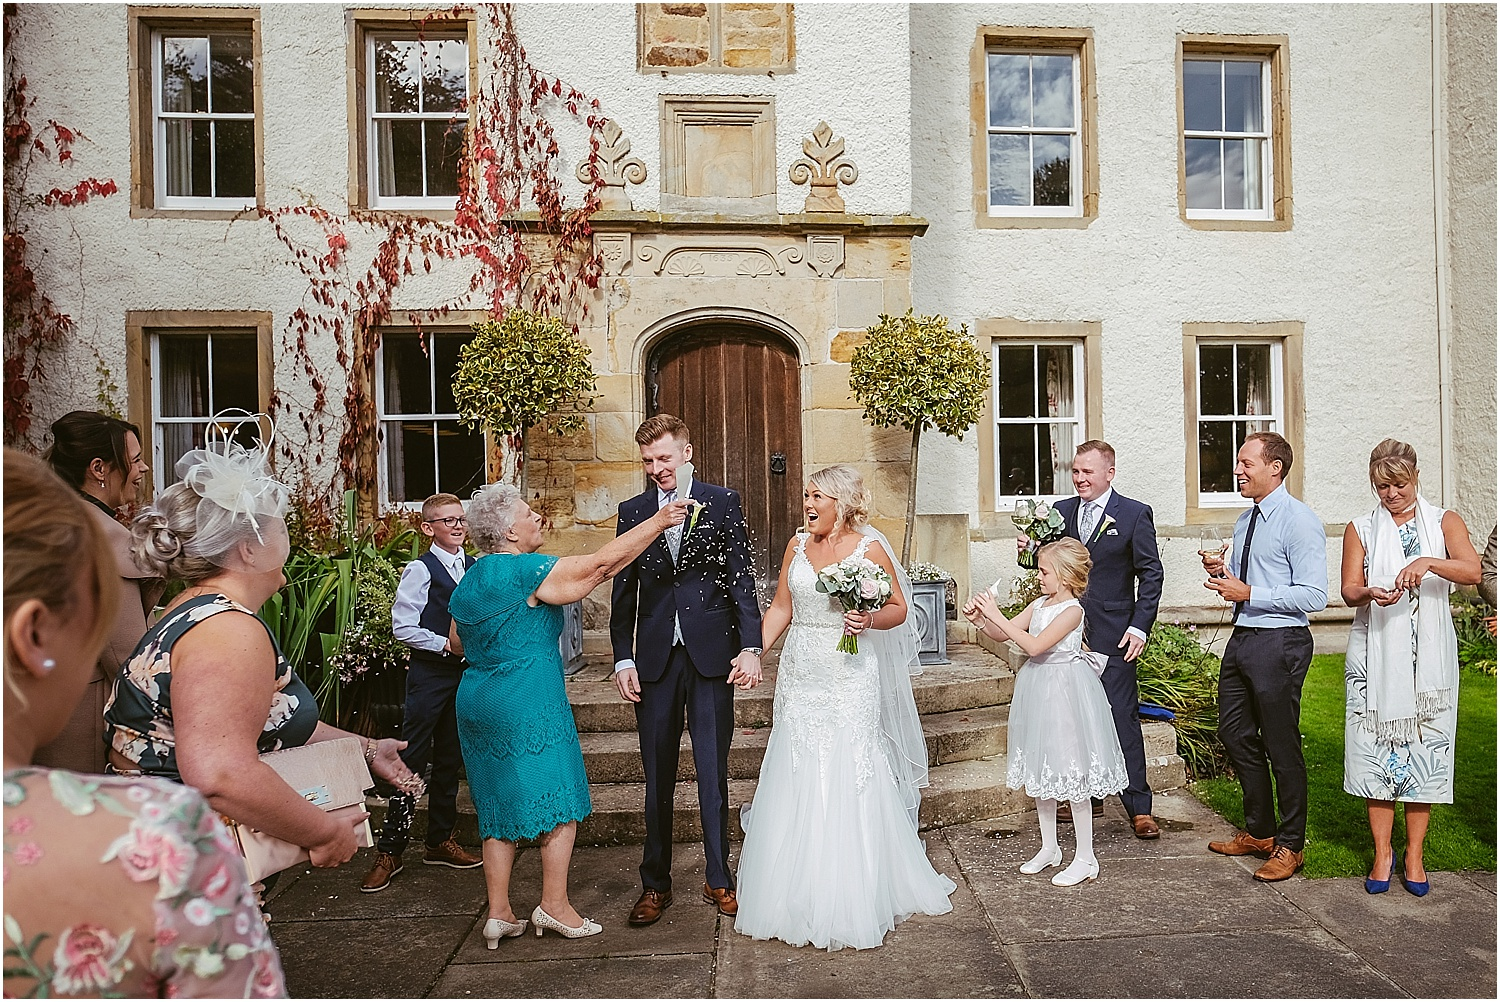 Lartington Hall weddings by www.2tonephotography.co.uk 056.jpg